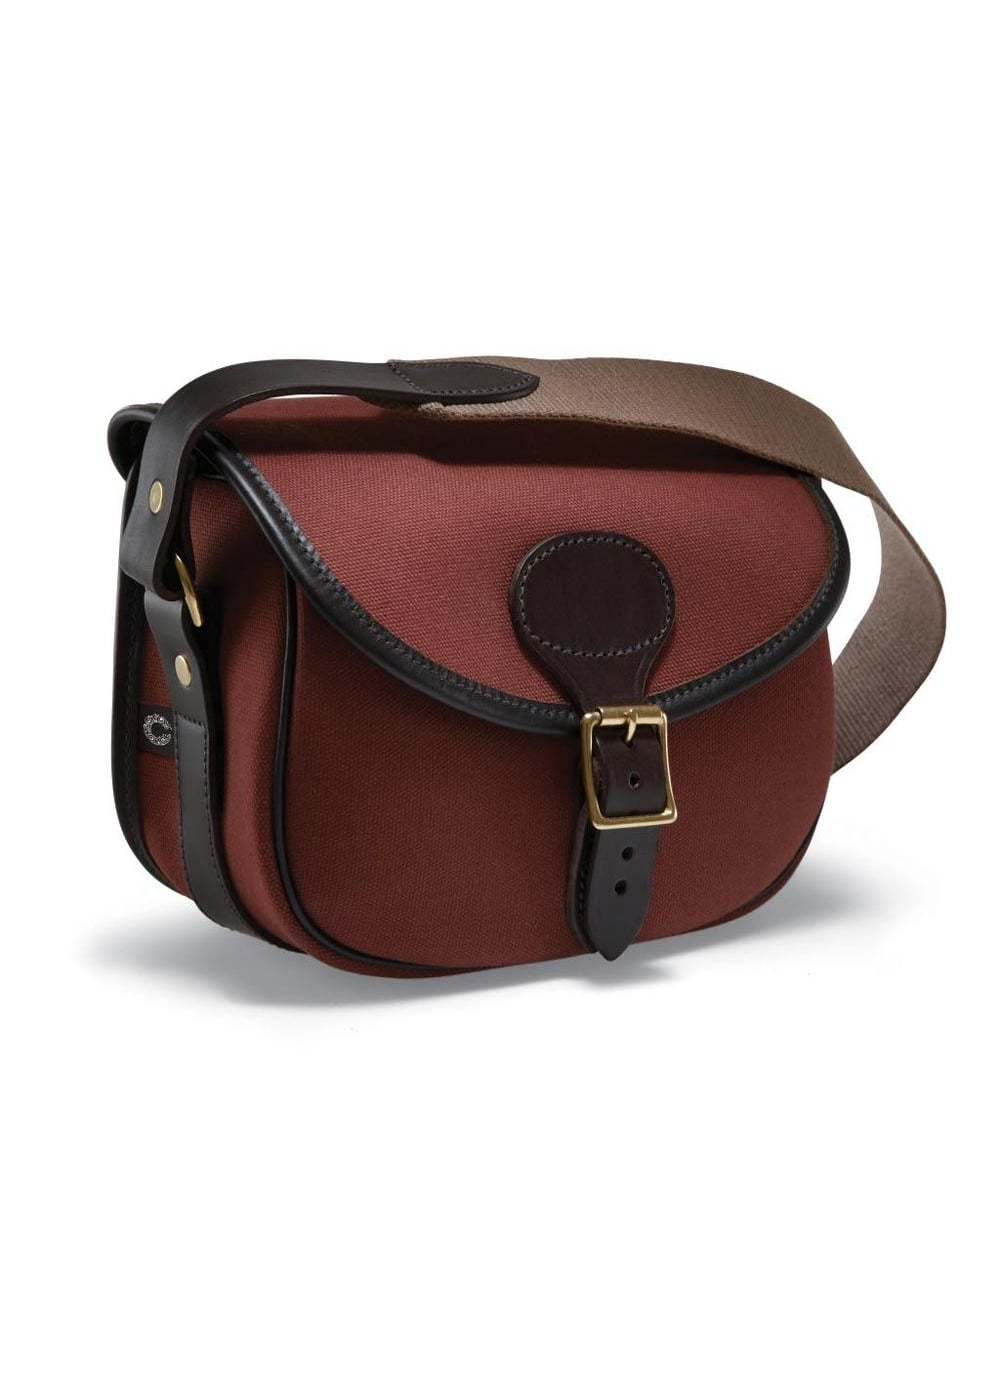 Croots Rosedale Canvas Cartridge Bag Large Image